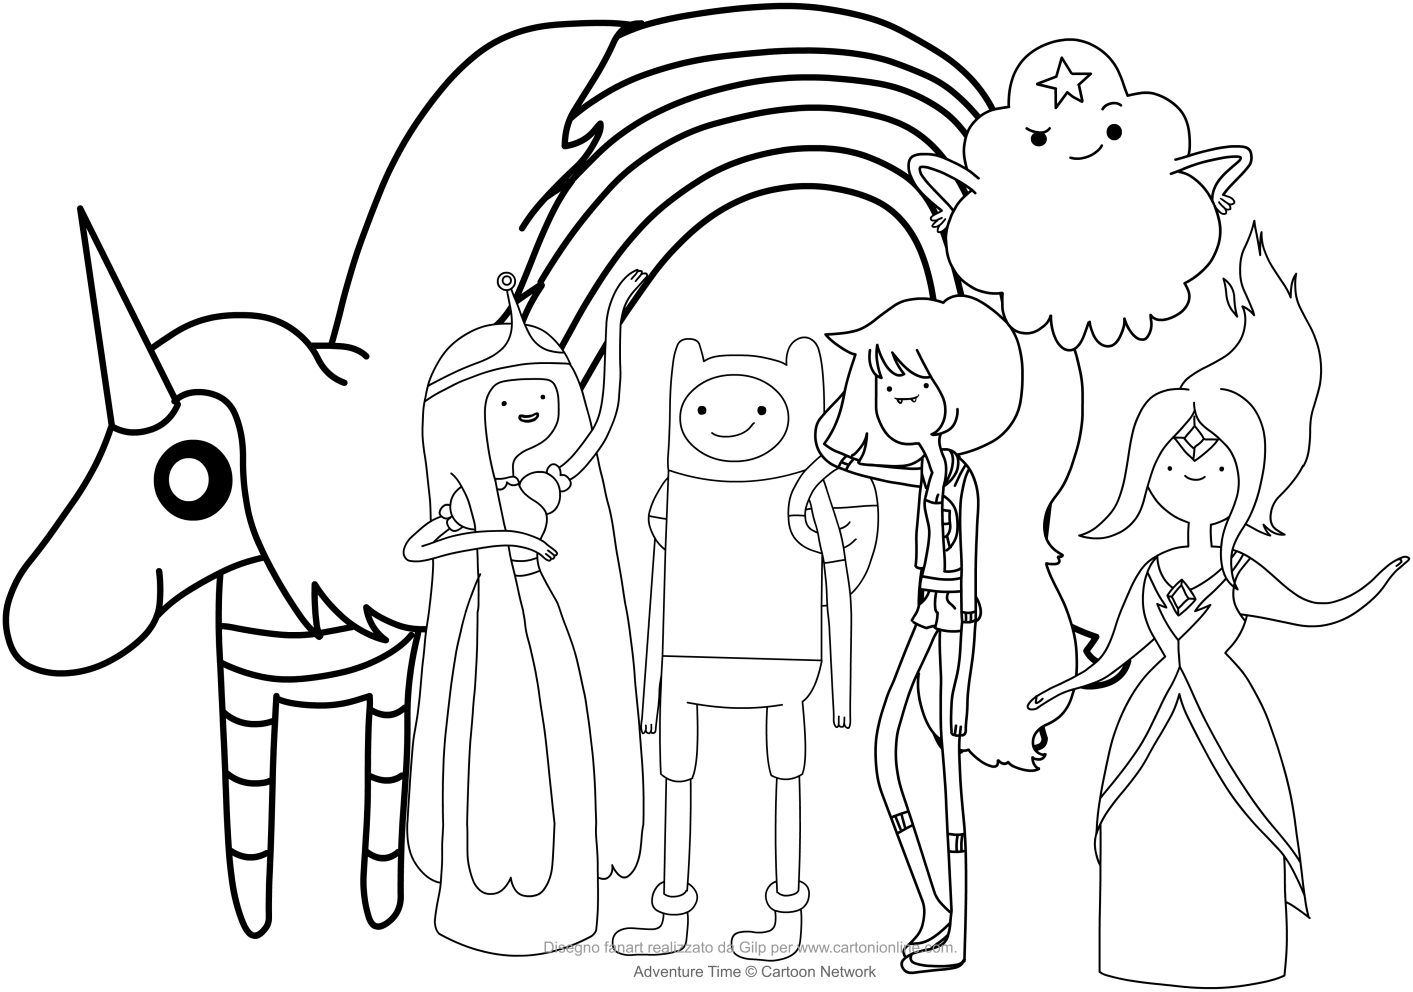 Finn and the princesses Adventure Time coloring pages